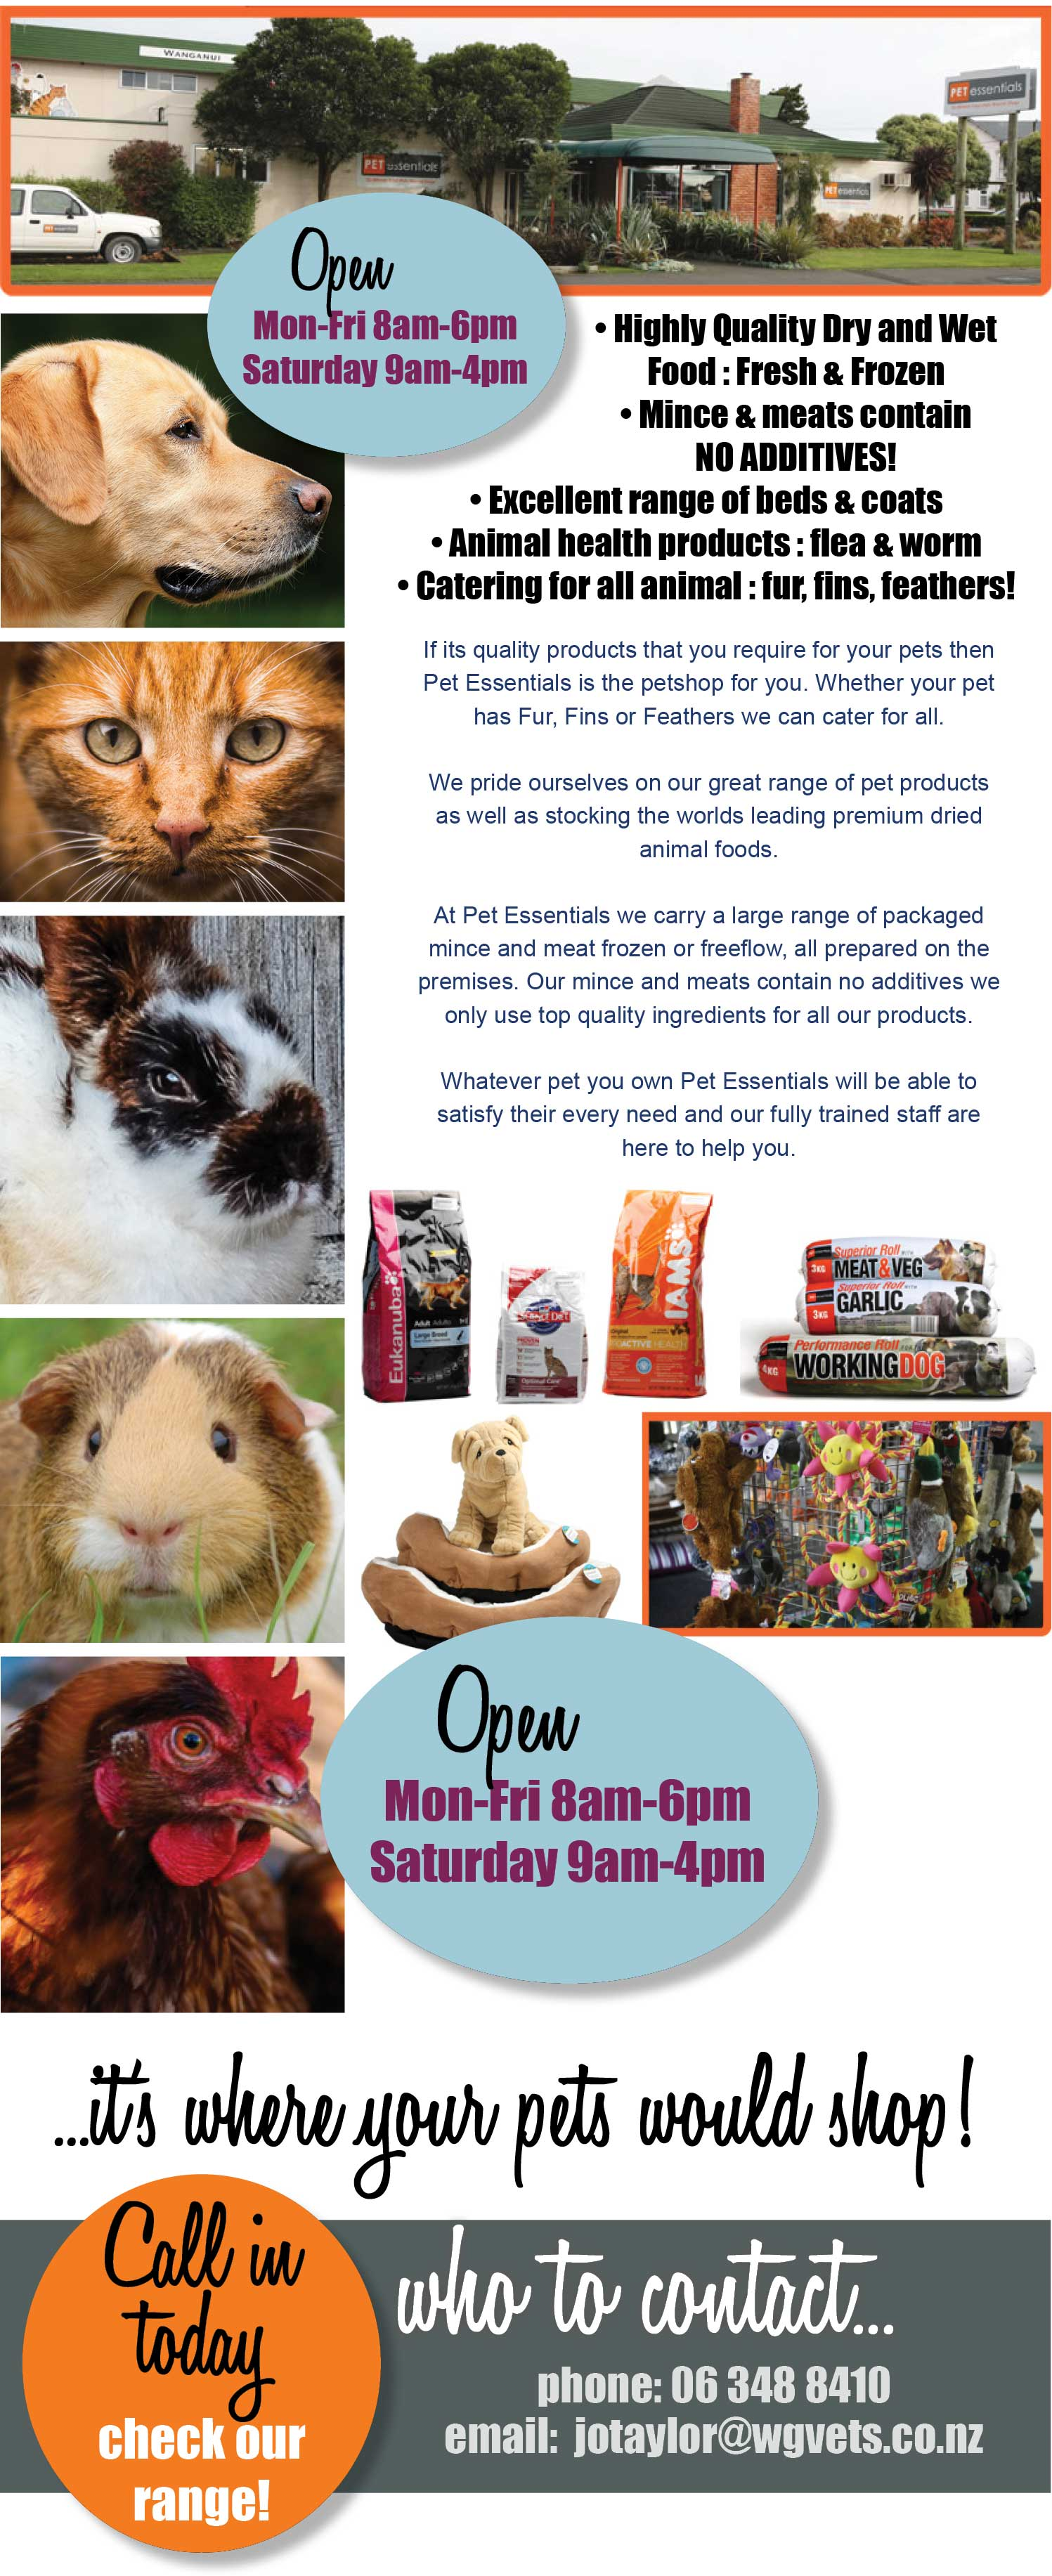 Pet Essentials Wanganui. High quality pet food, beds & coats, animal health products, all animals catered for. Wanganui Pet Essentials, Somme Parade, Wanganui. Pet supplies, pet food.